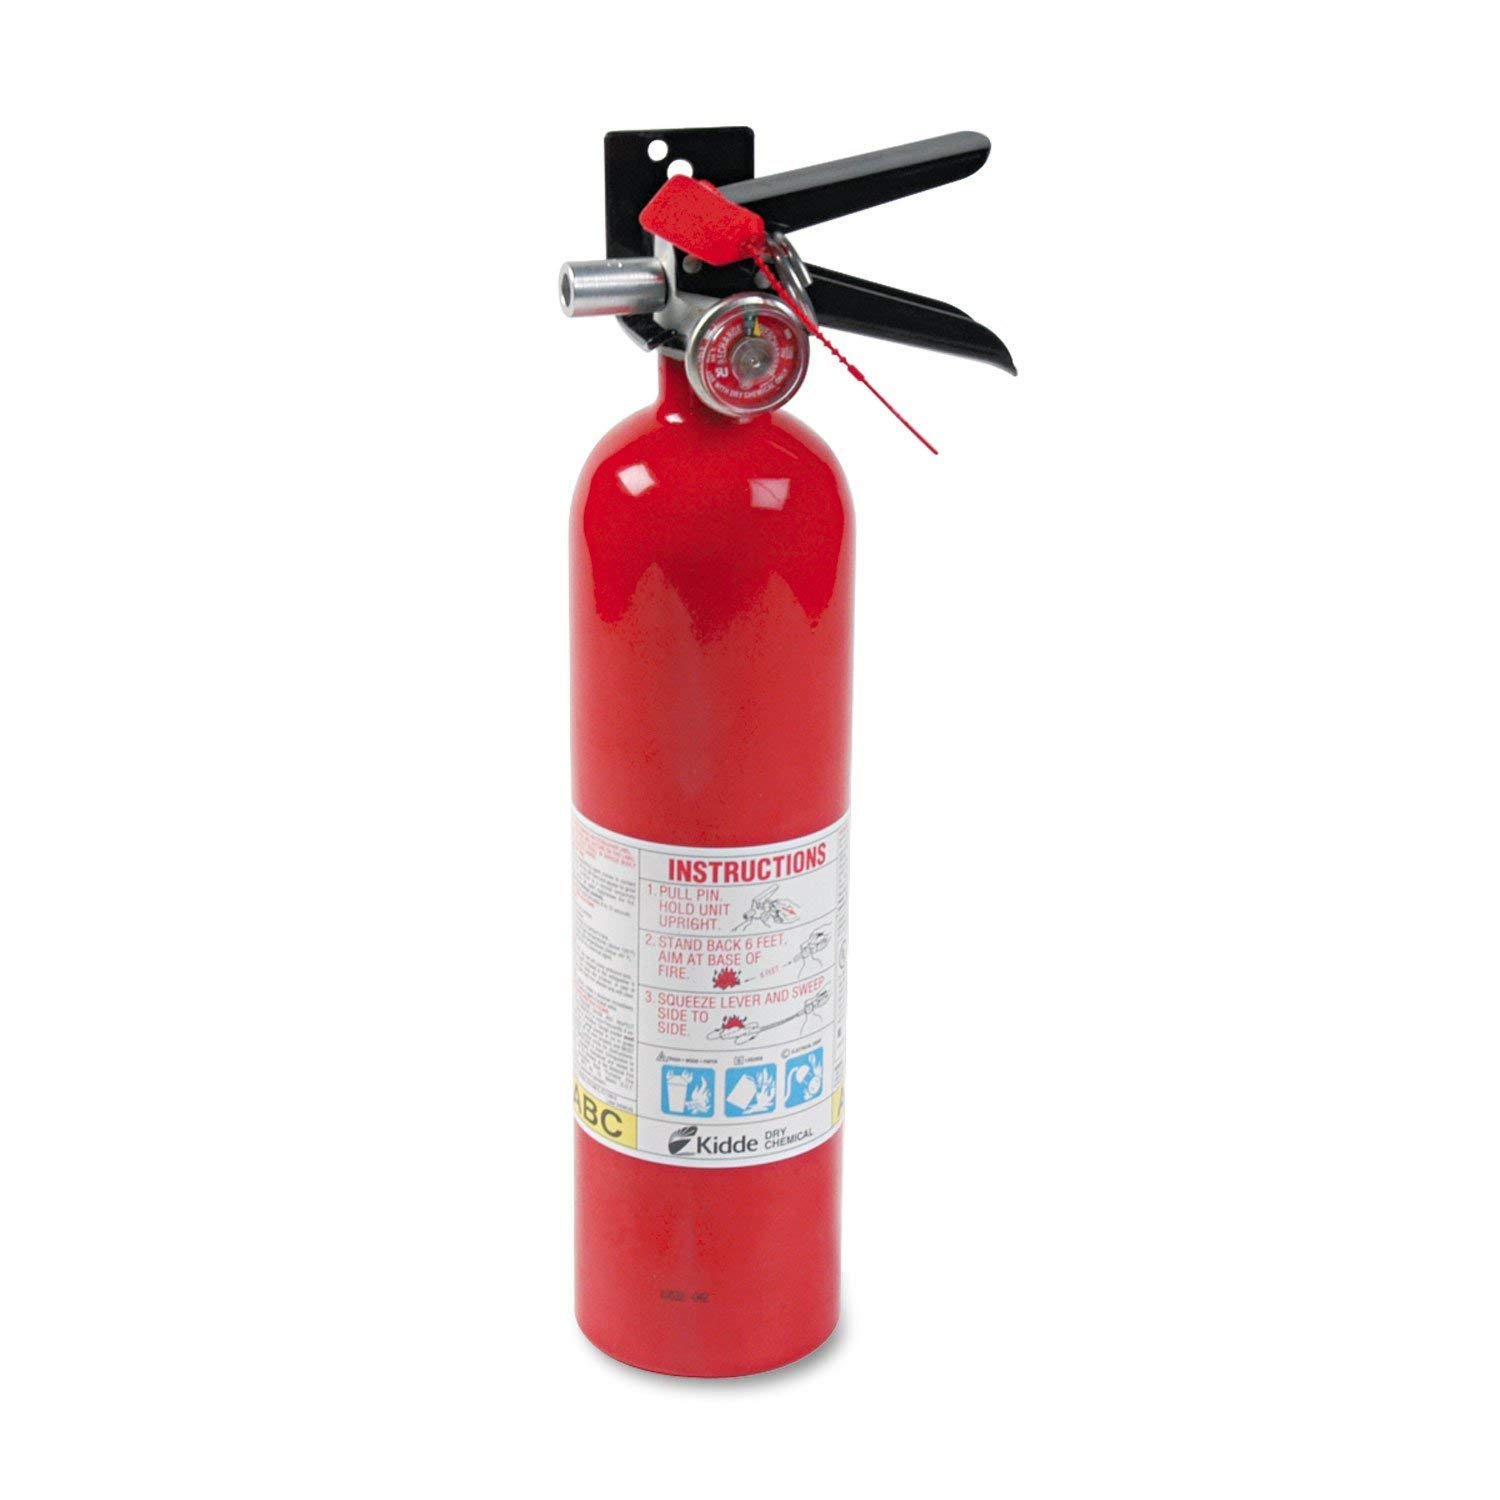 Kidde 466227 ABC Pro Multi-Purpose Dry Chemical, Commerical and Industrial Fire Extinguisher, UL Rated 1-A, 10-B C, Pack of 8